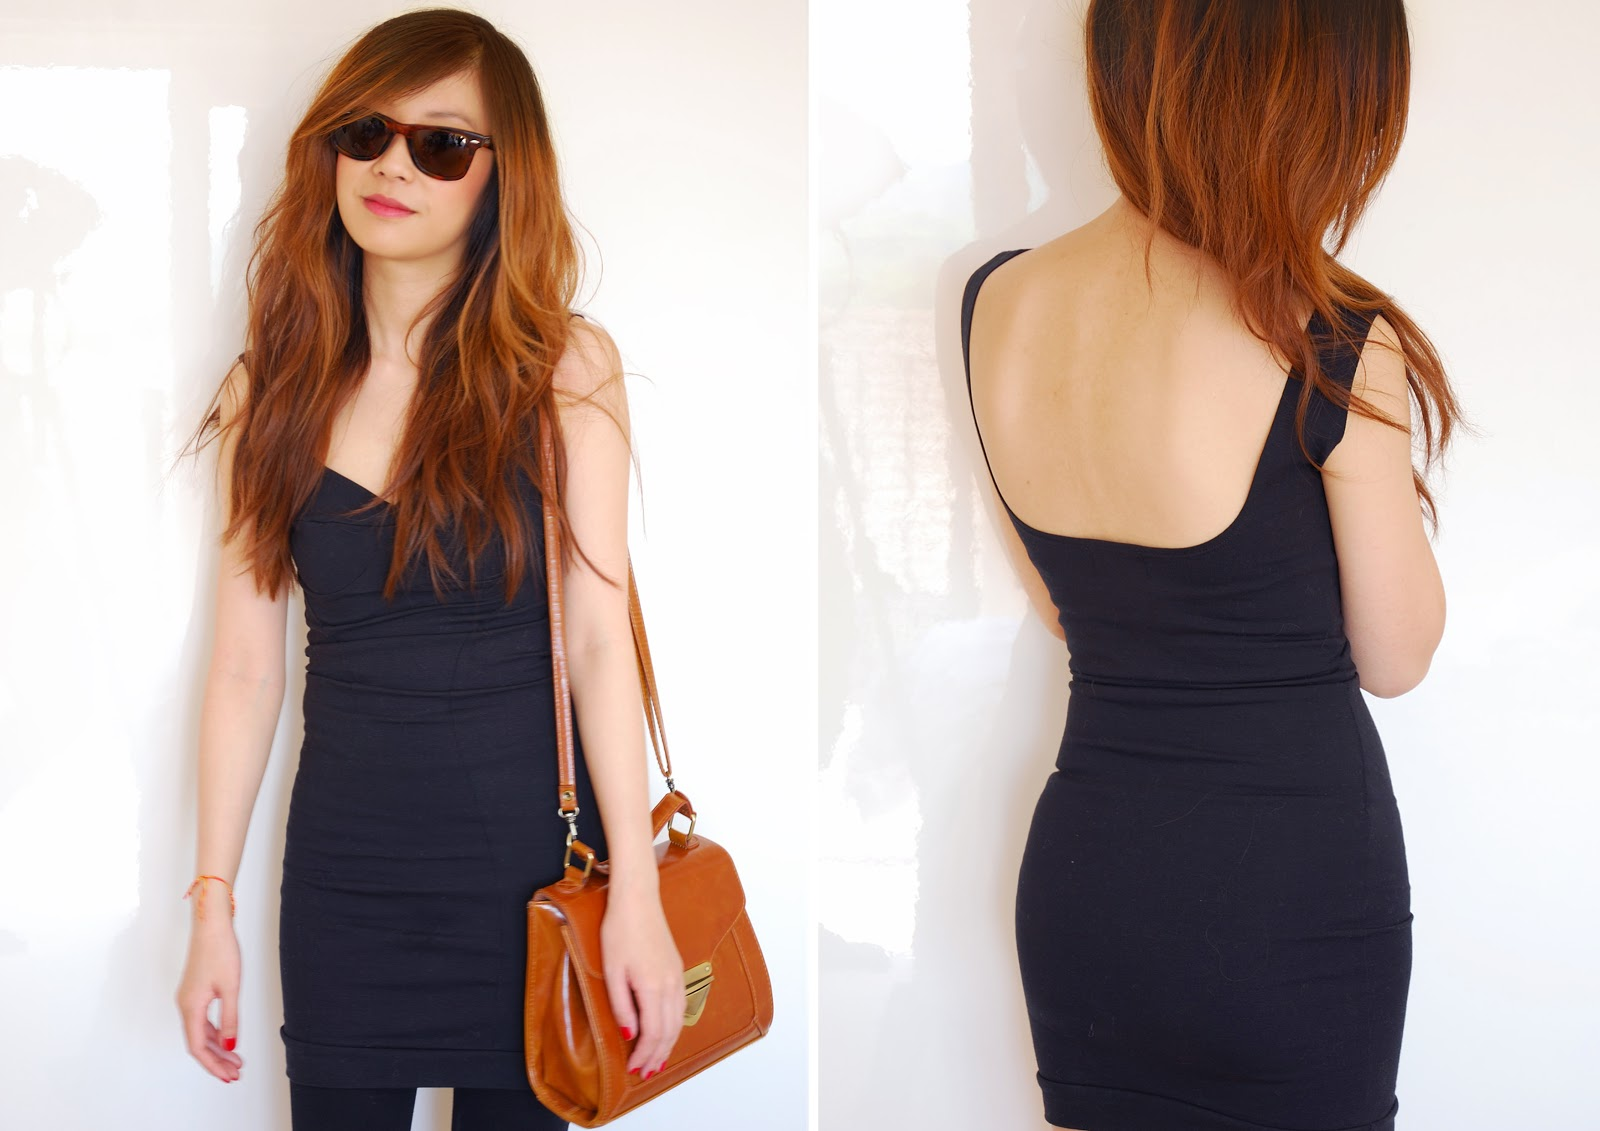 LBD, little black dress, how to style a little black dress for daytime